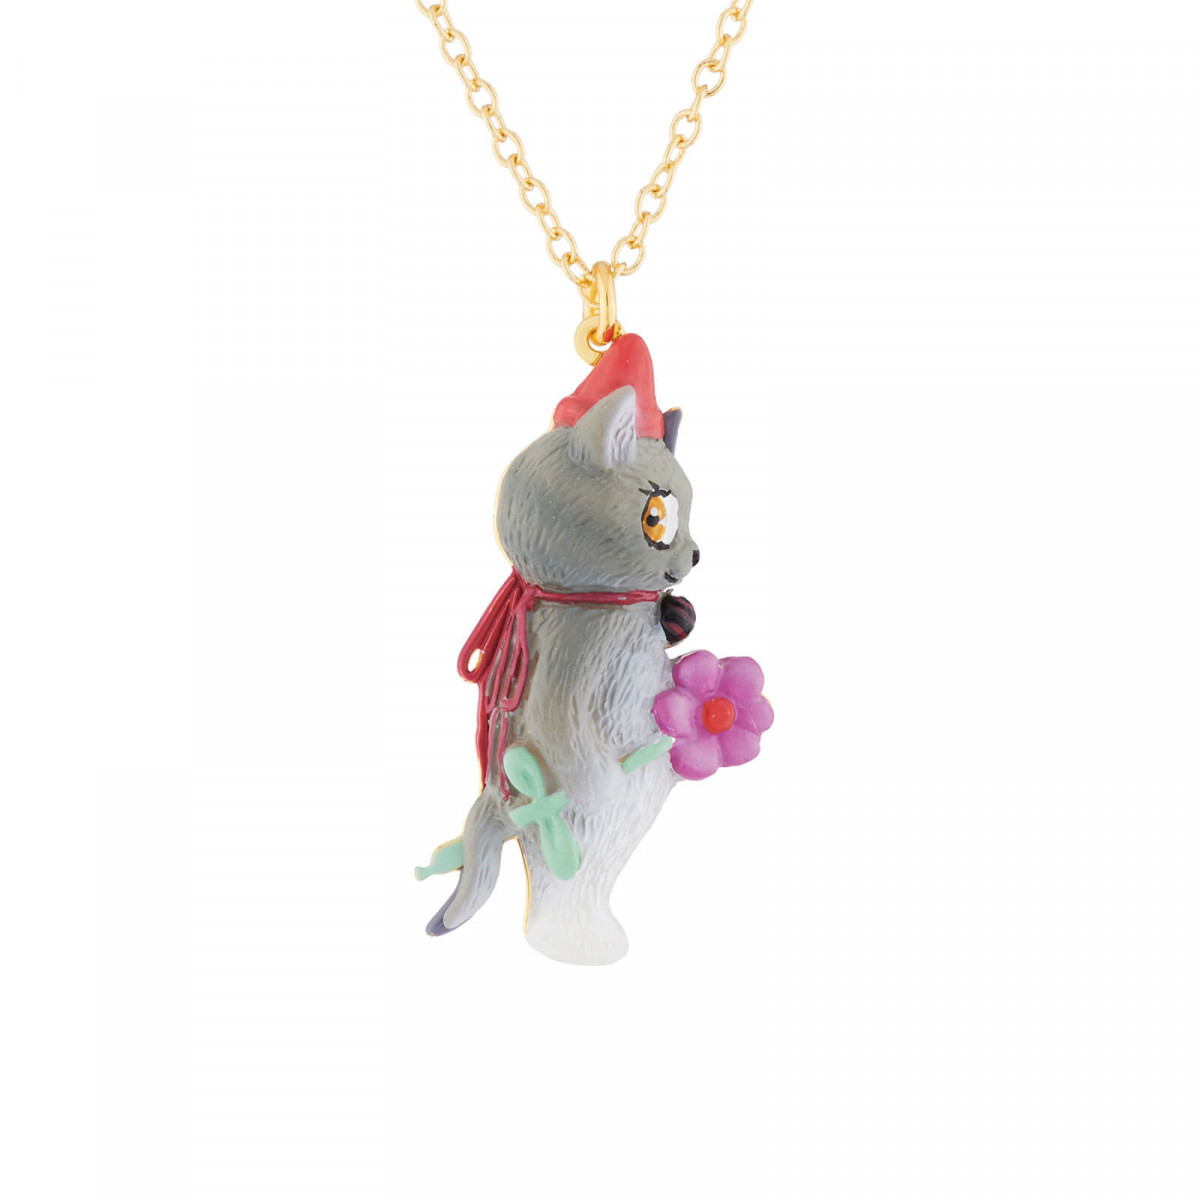 Colliers Collier Fin Pendentif Chat